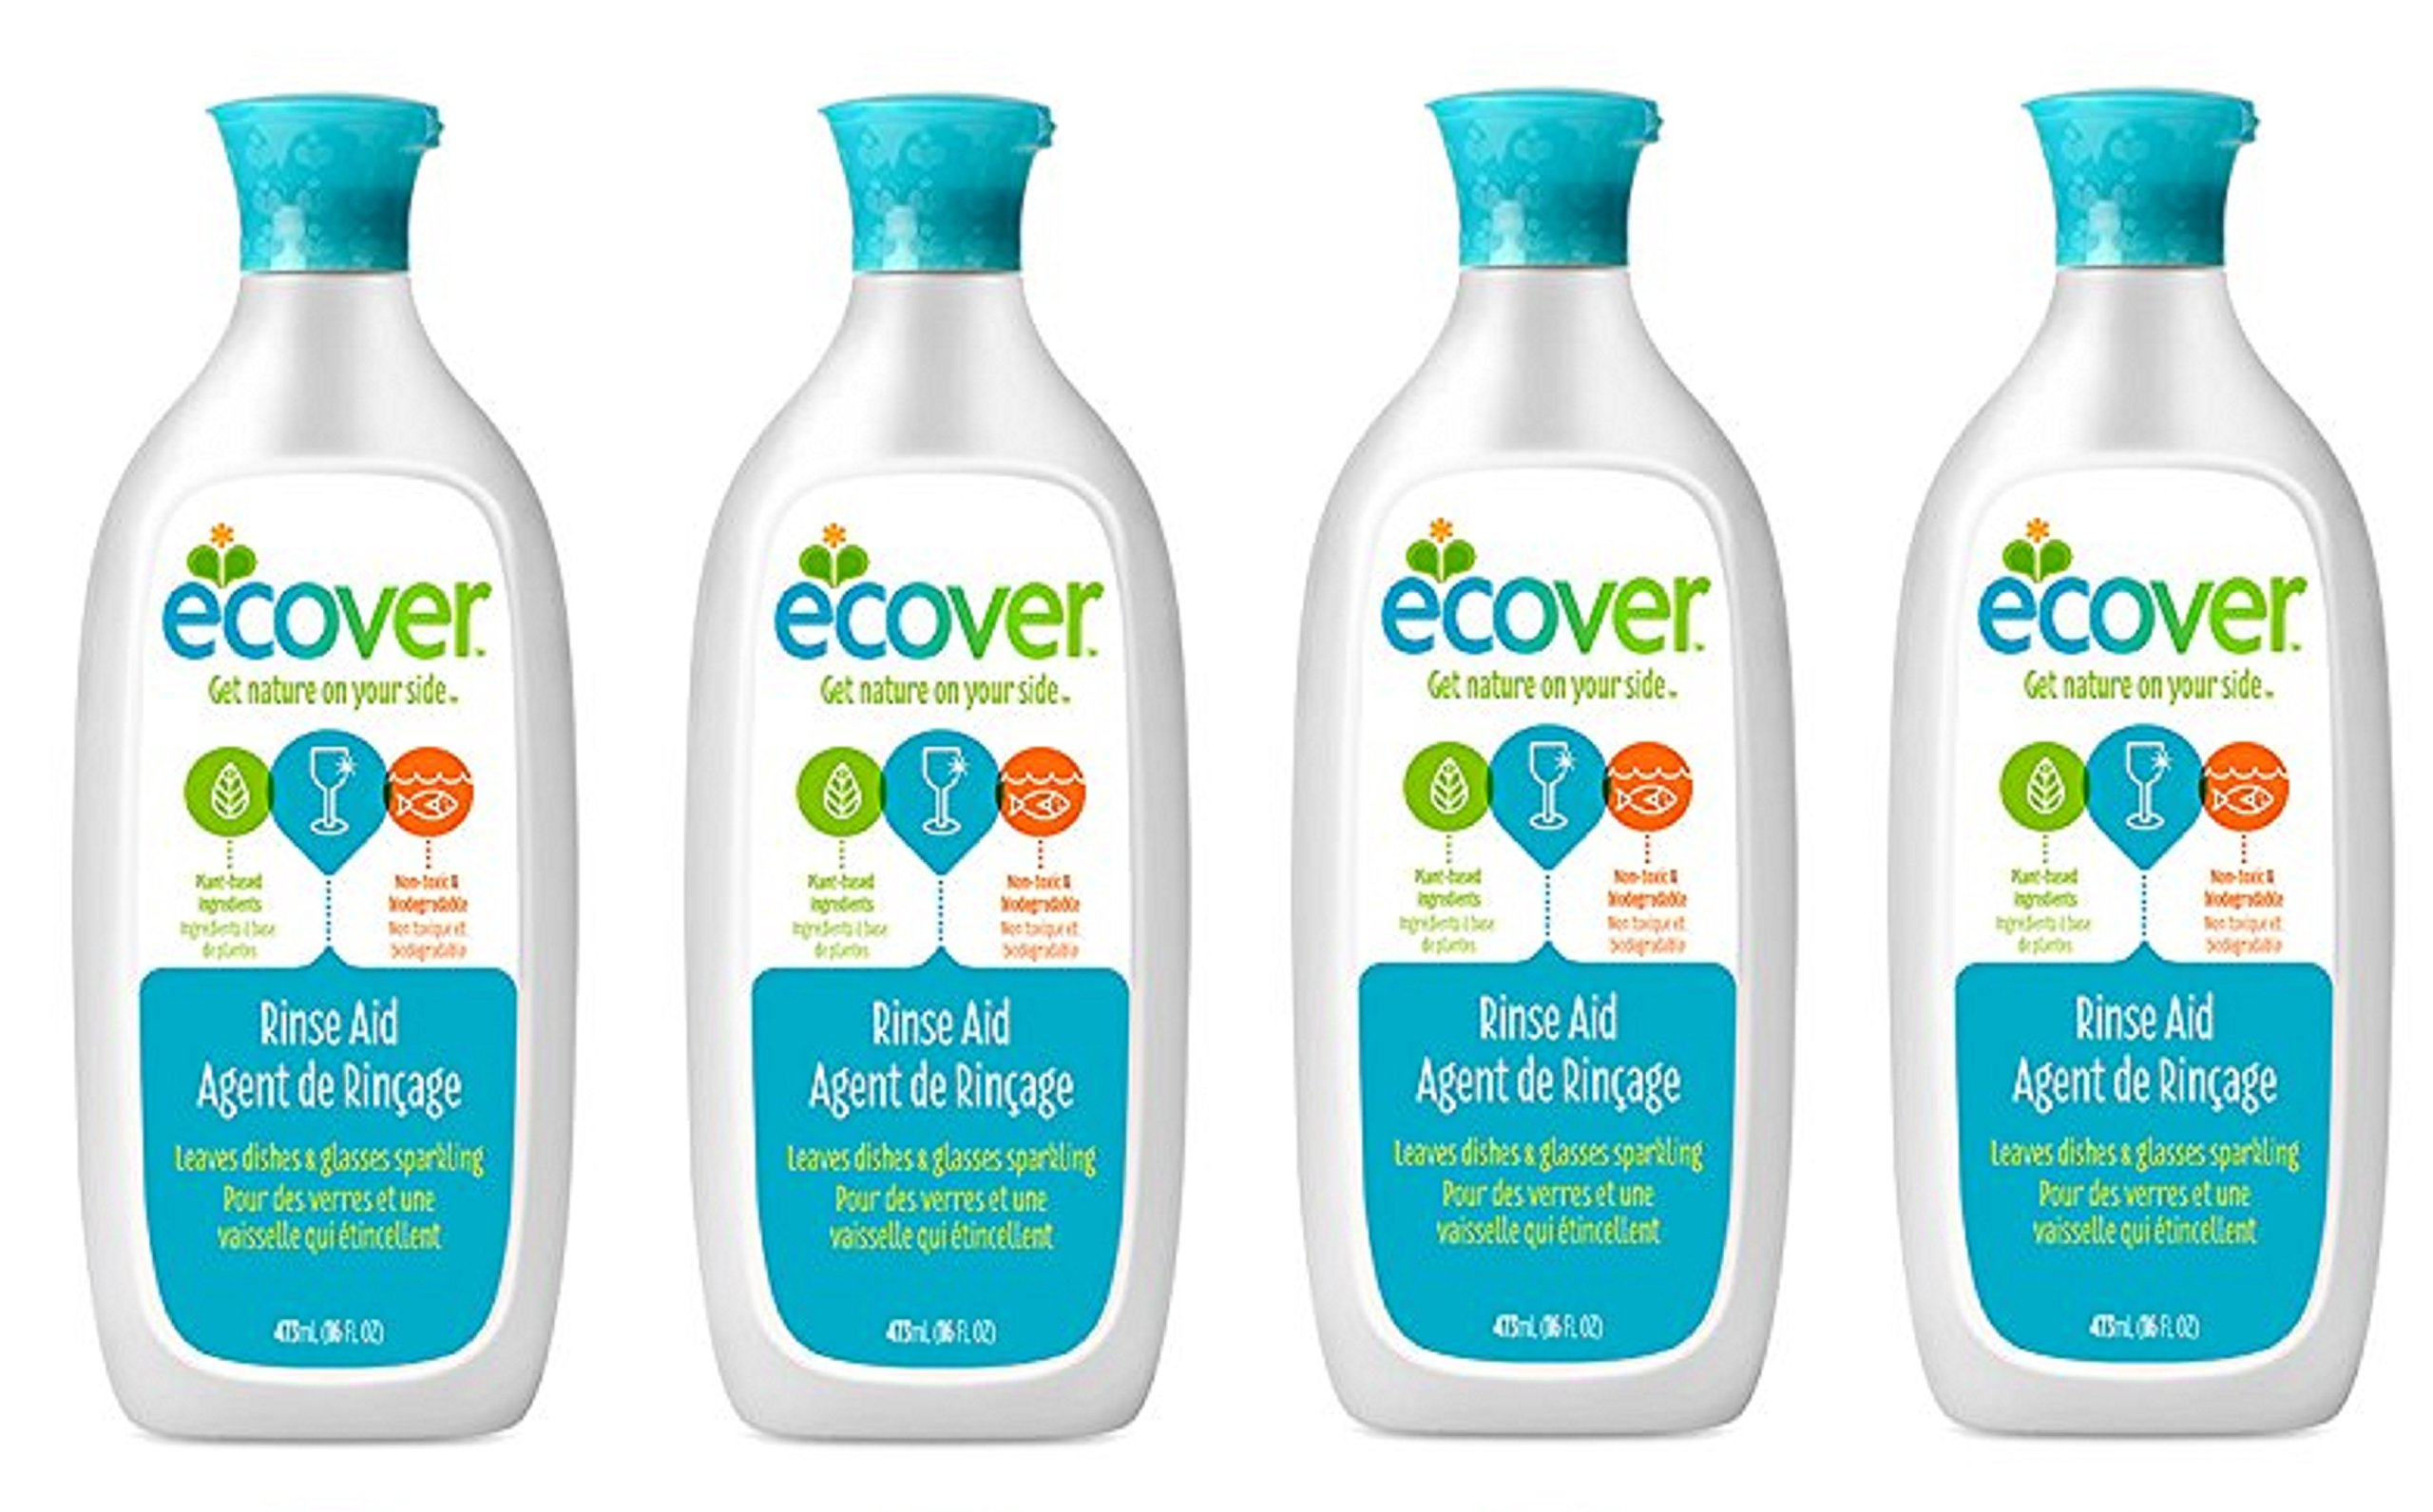 Ecover Naturally Derived Rinse lnYRAg Aid for Dishwashers, 16 Ounce (Pack of 4)